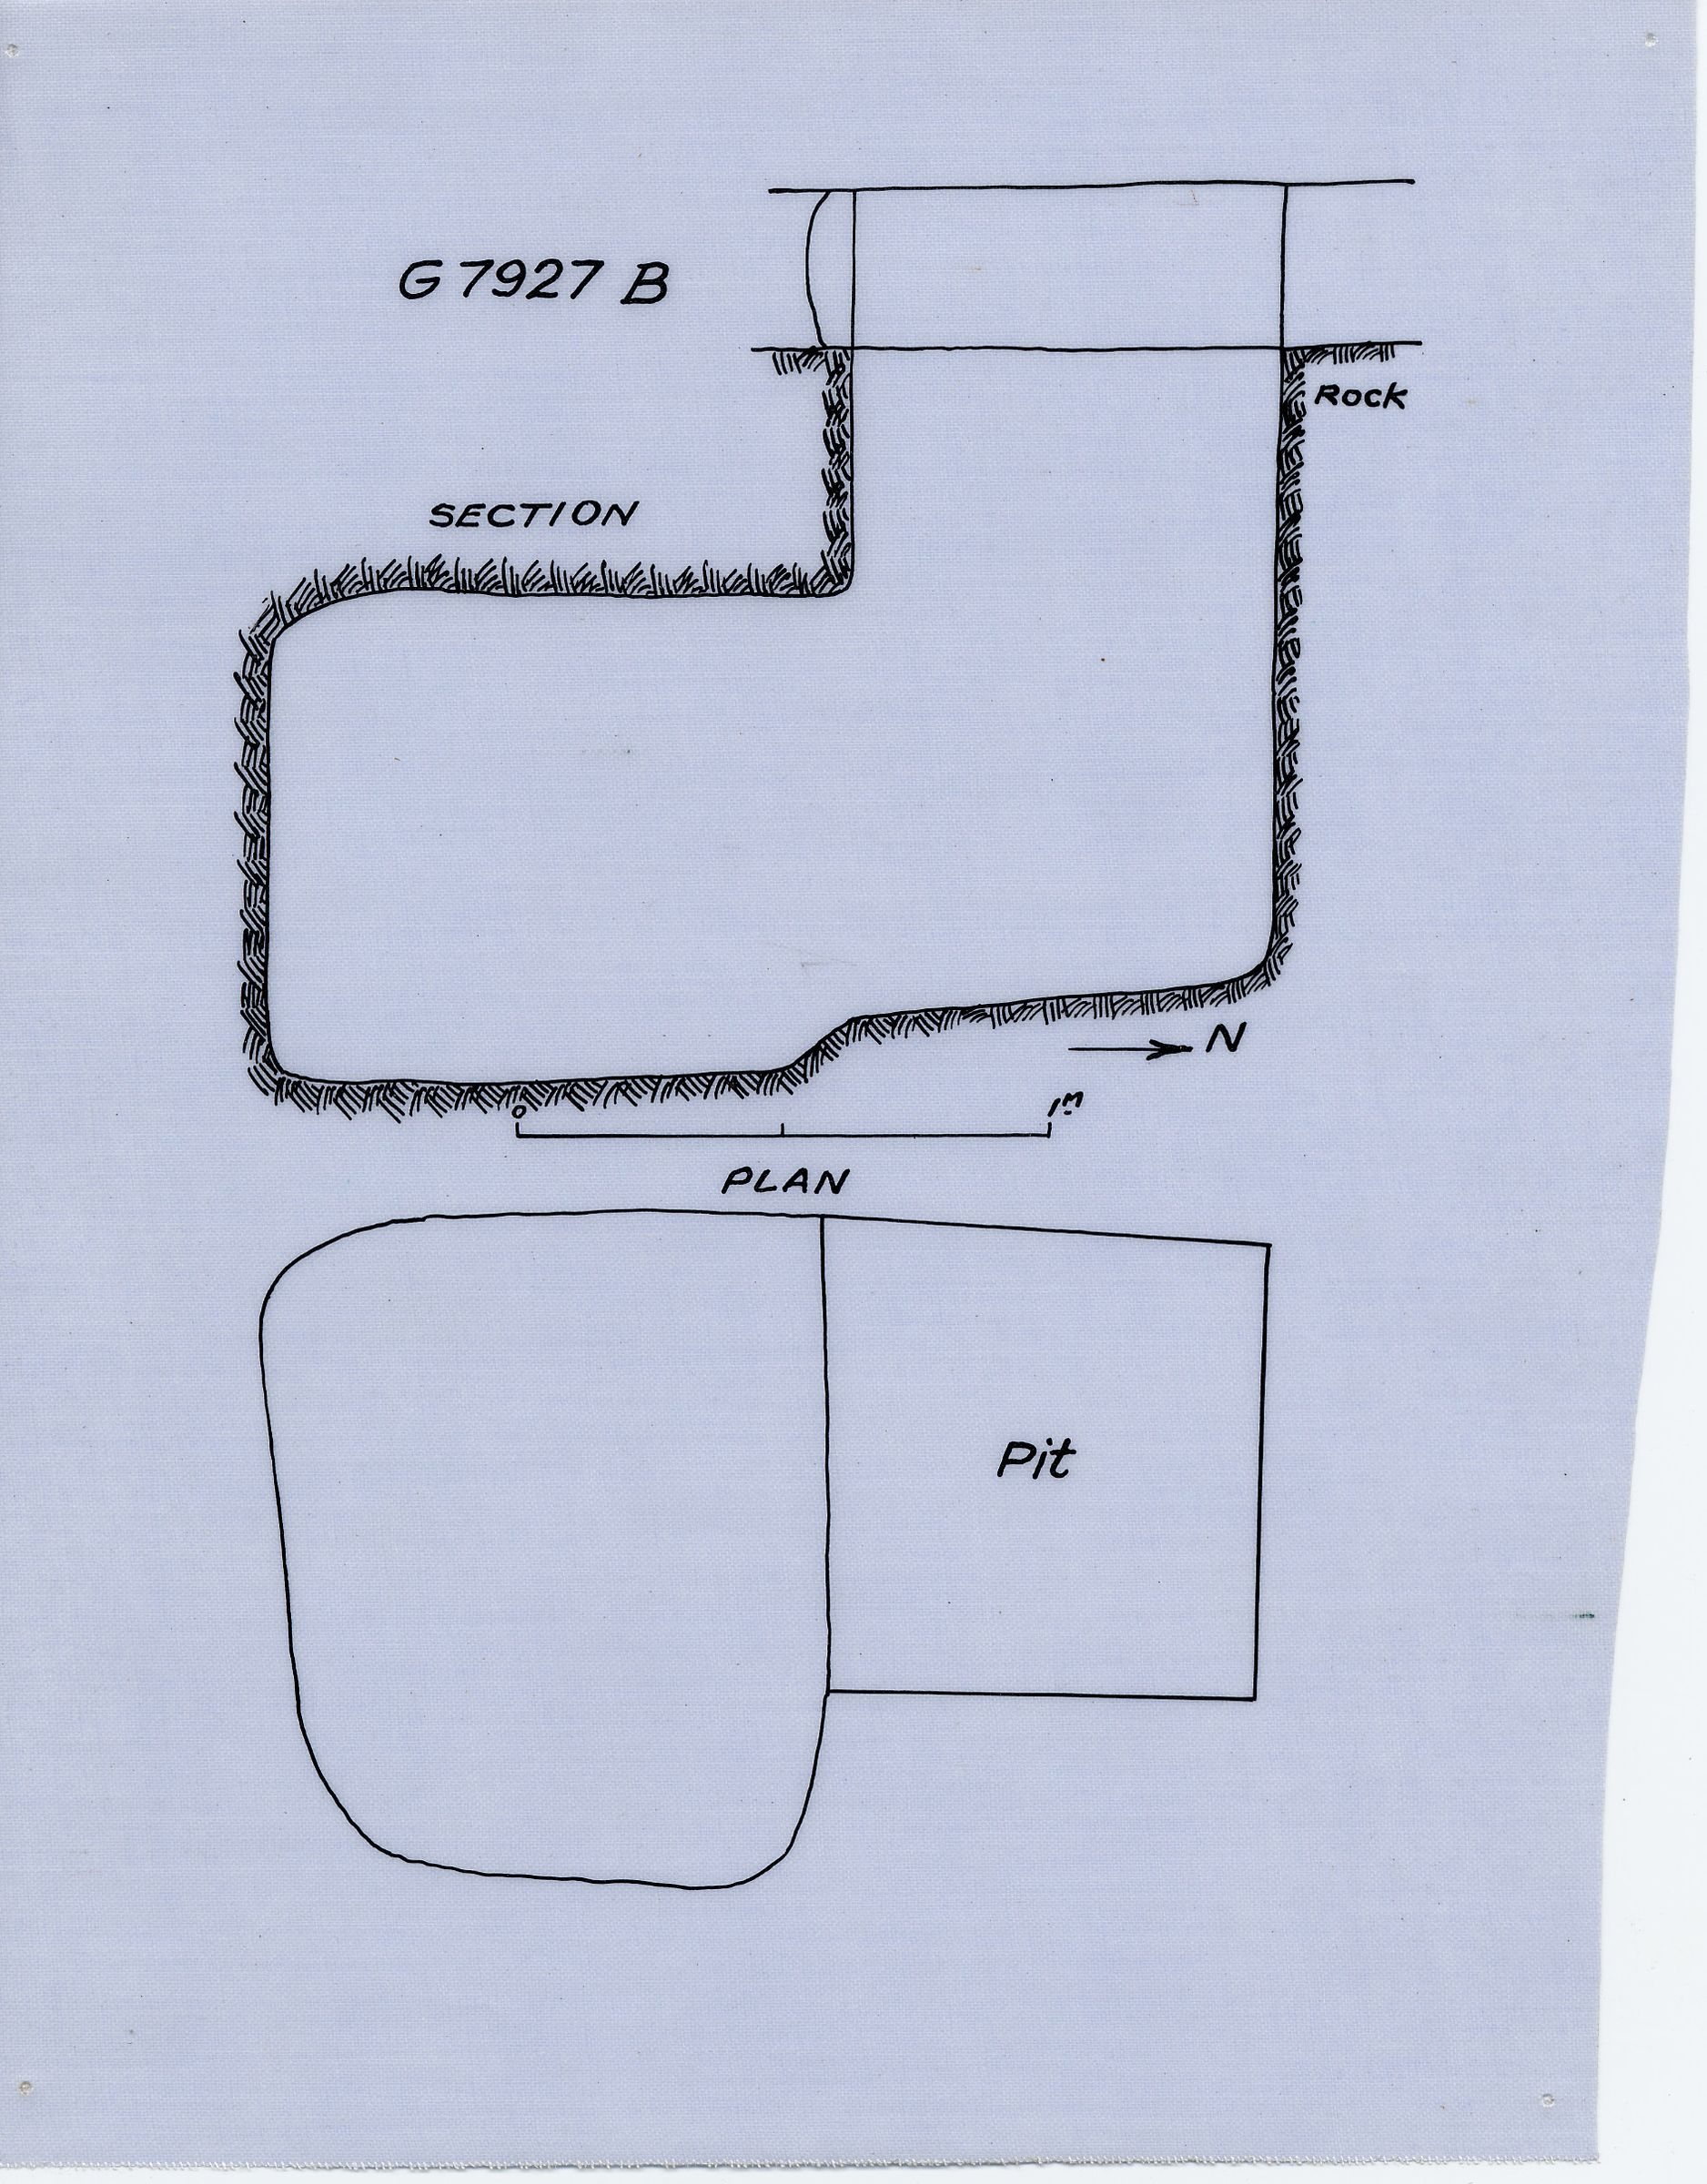 Maps and plans: G 7927, Shaft B